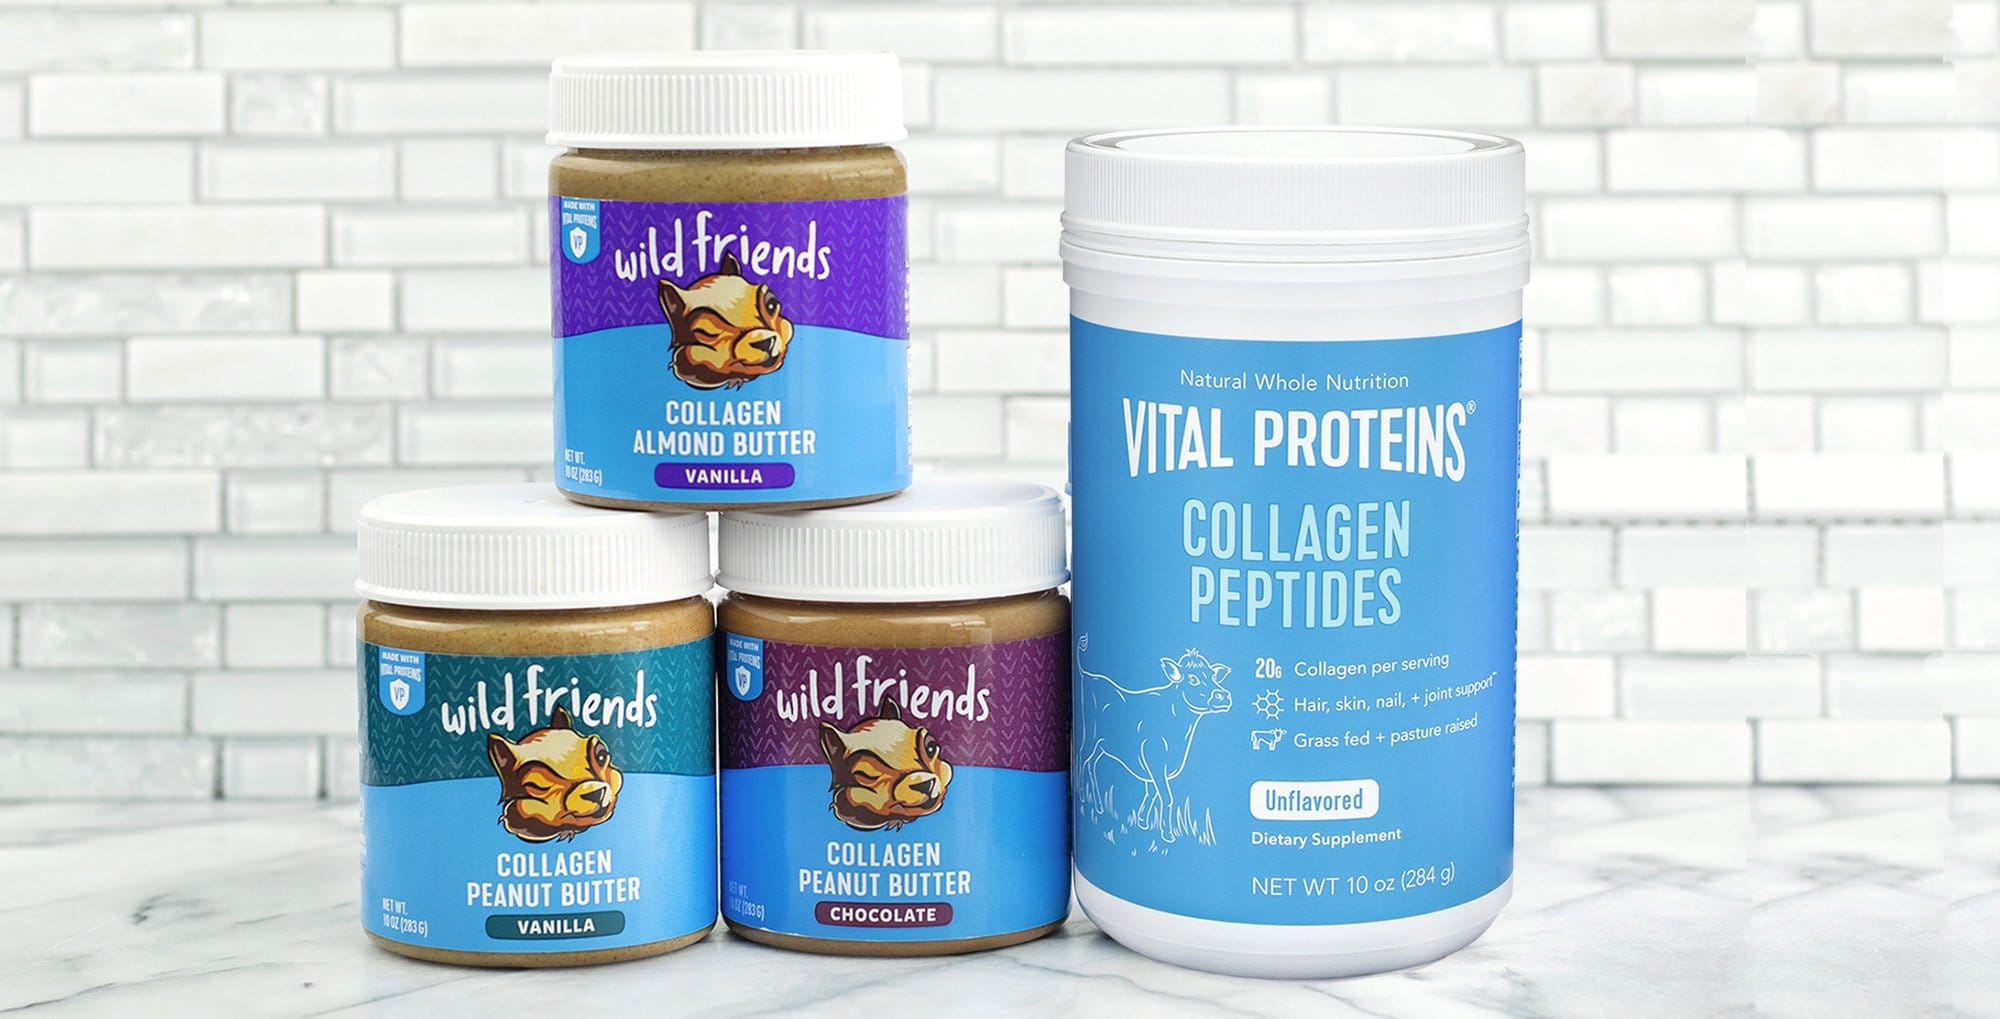 Wild Friends Launches Collagen Nut Butters